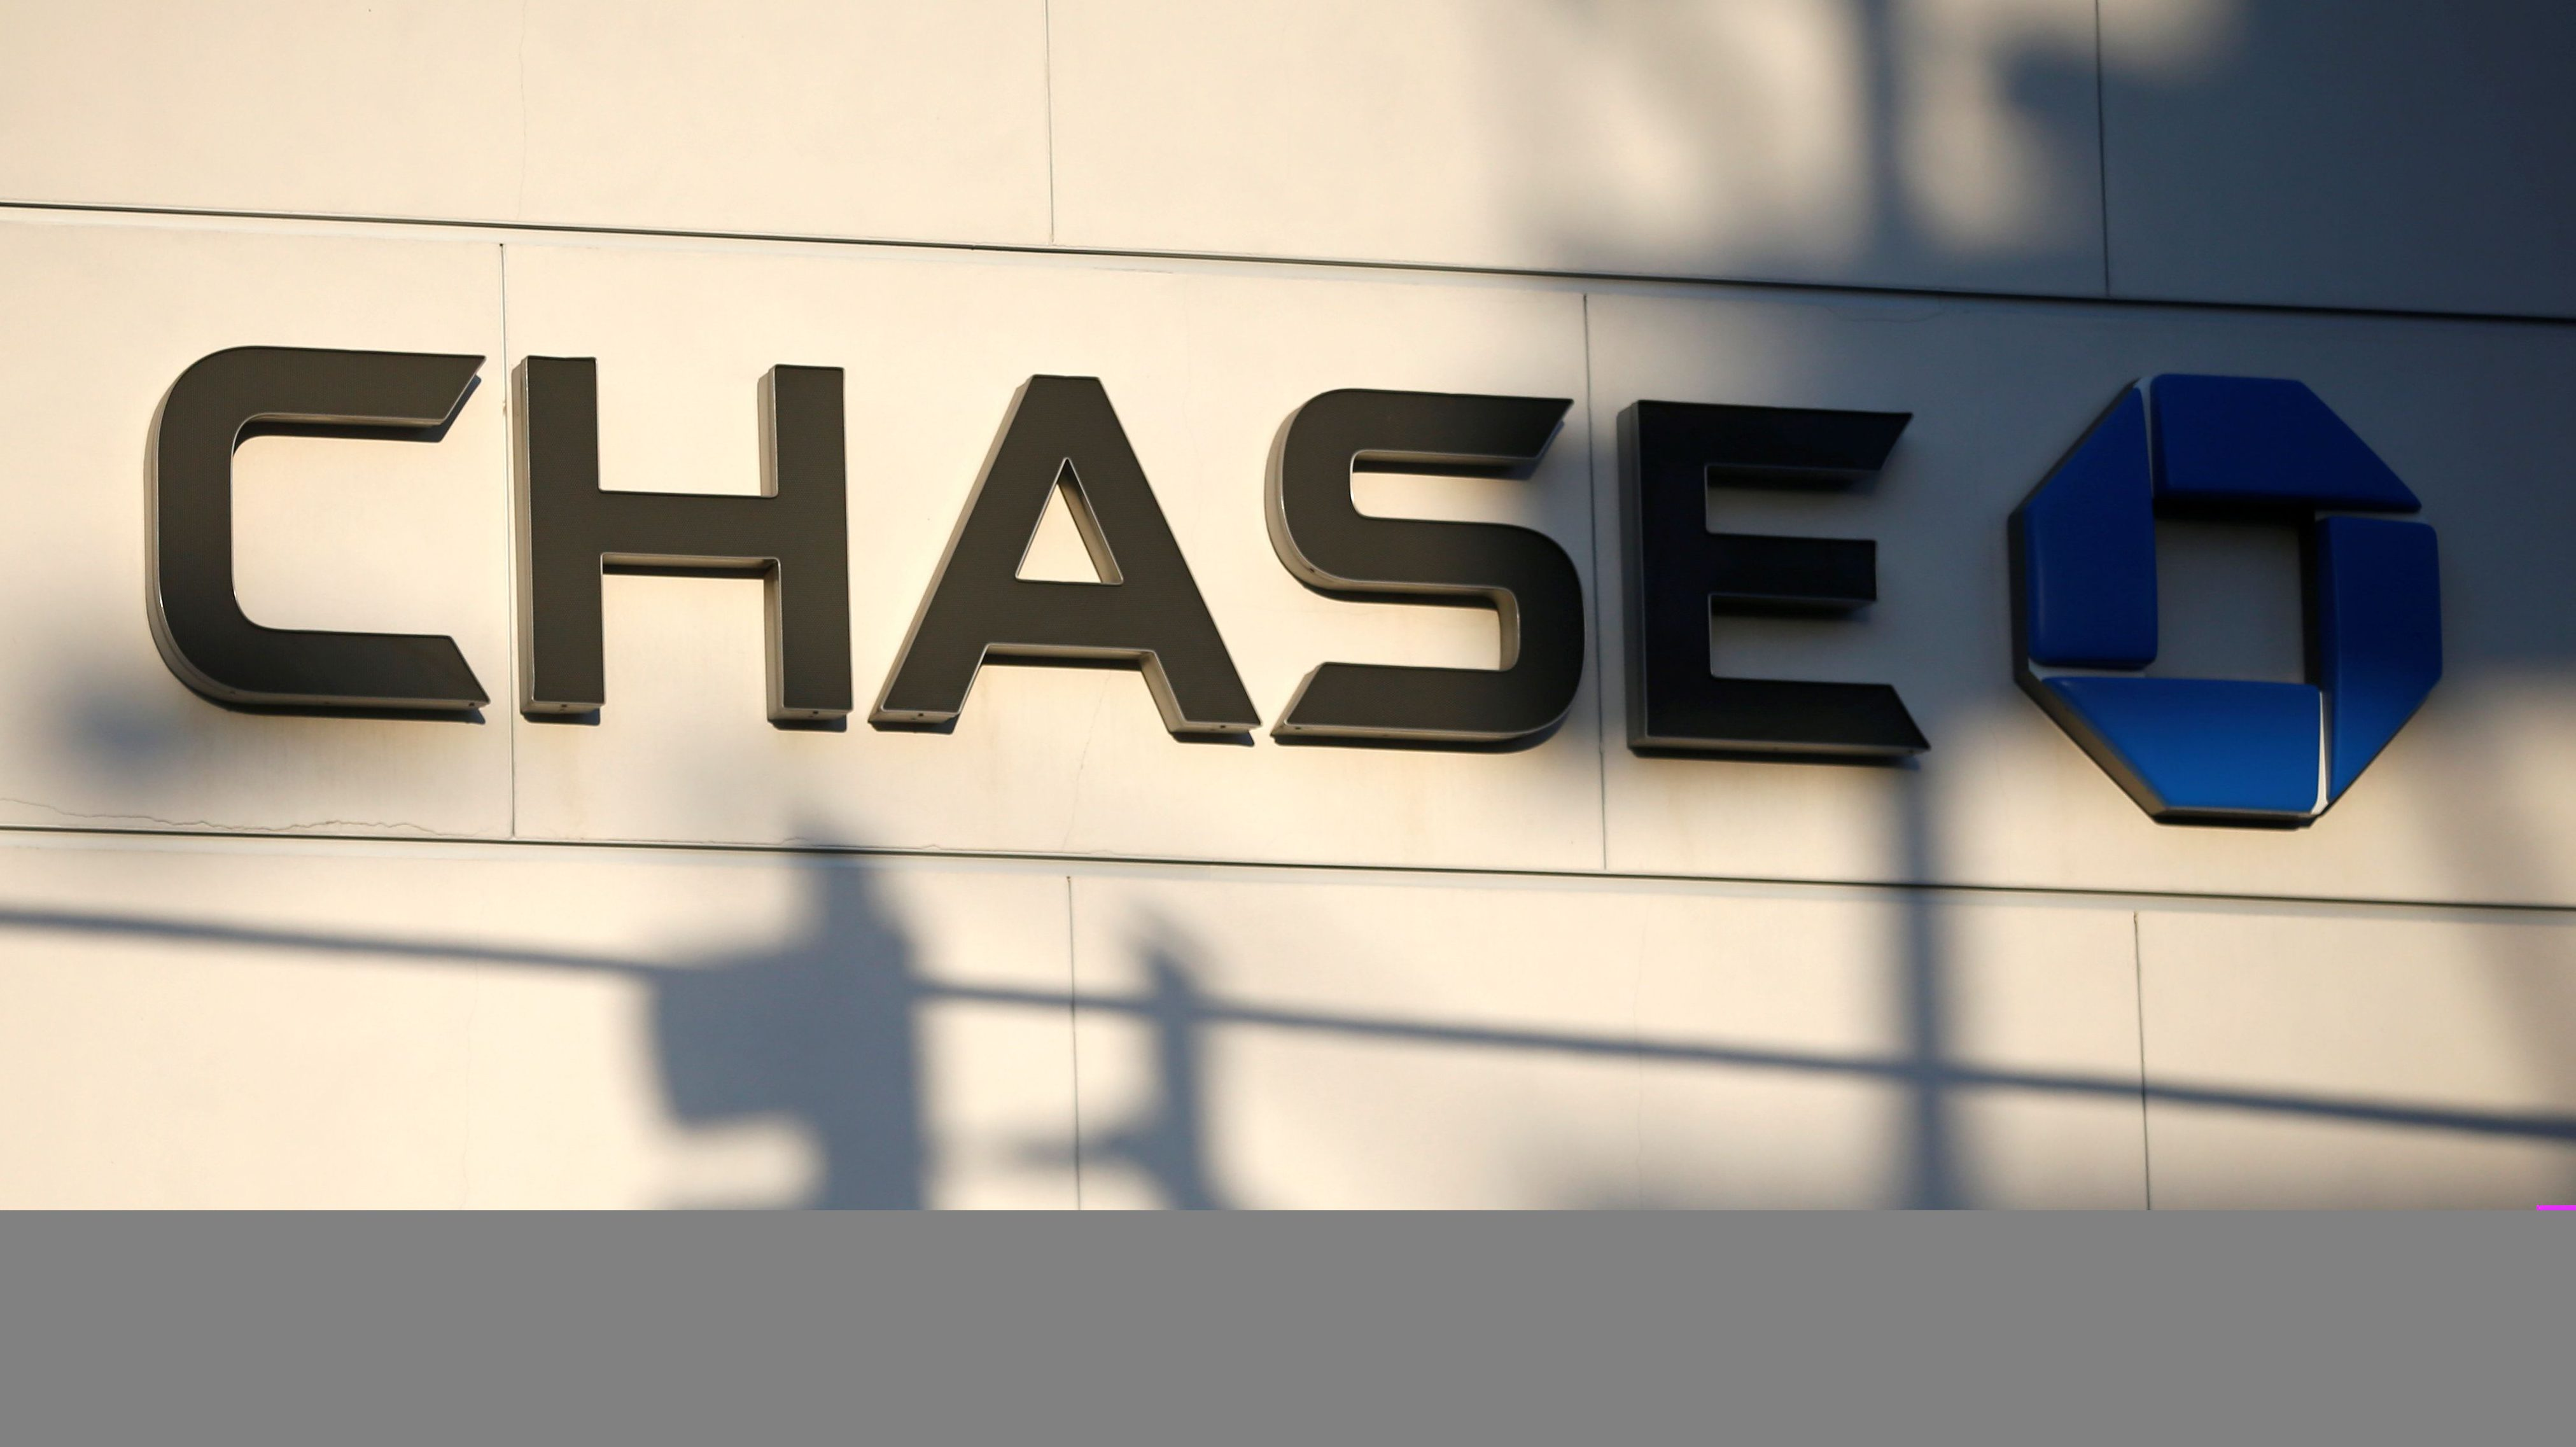 The logo of Dow Jones Industrial Average stock market index listed company Chase (JPM) is seen in Los Angeles, California, United States, April 25, 2016. Picture taken April 25, 2016. JPMorgan Chase & Co. owns Chase Commerical Bank and JPMorgan Investment Bank.  REUTERS/Lucy Nicholson - RTX2E4AC